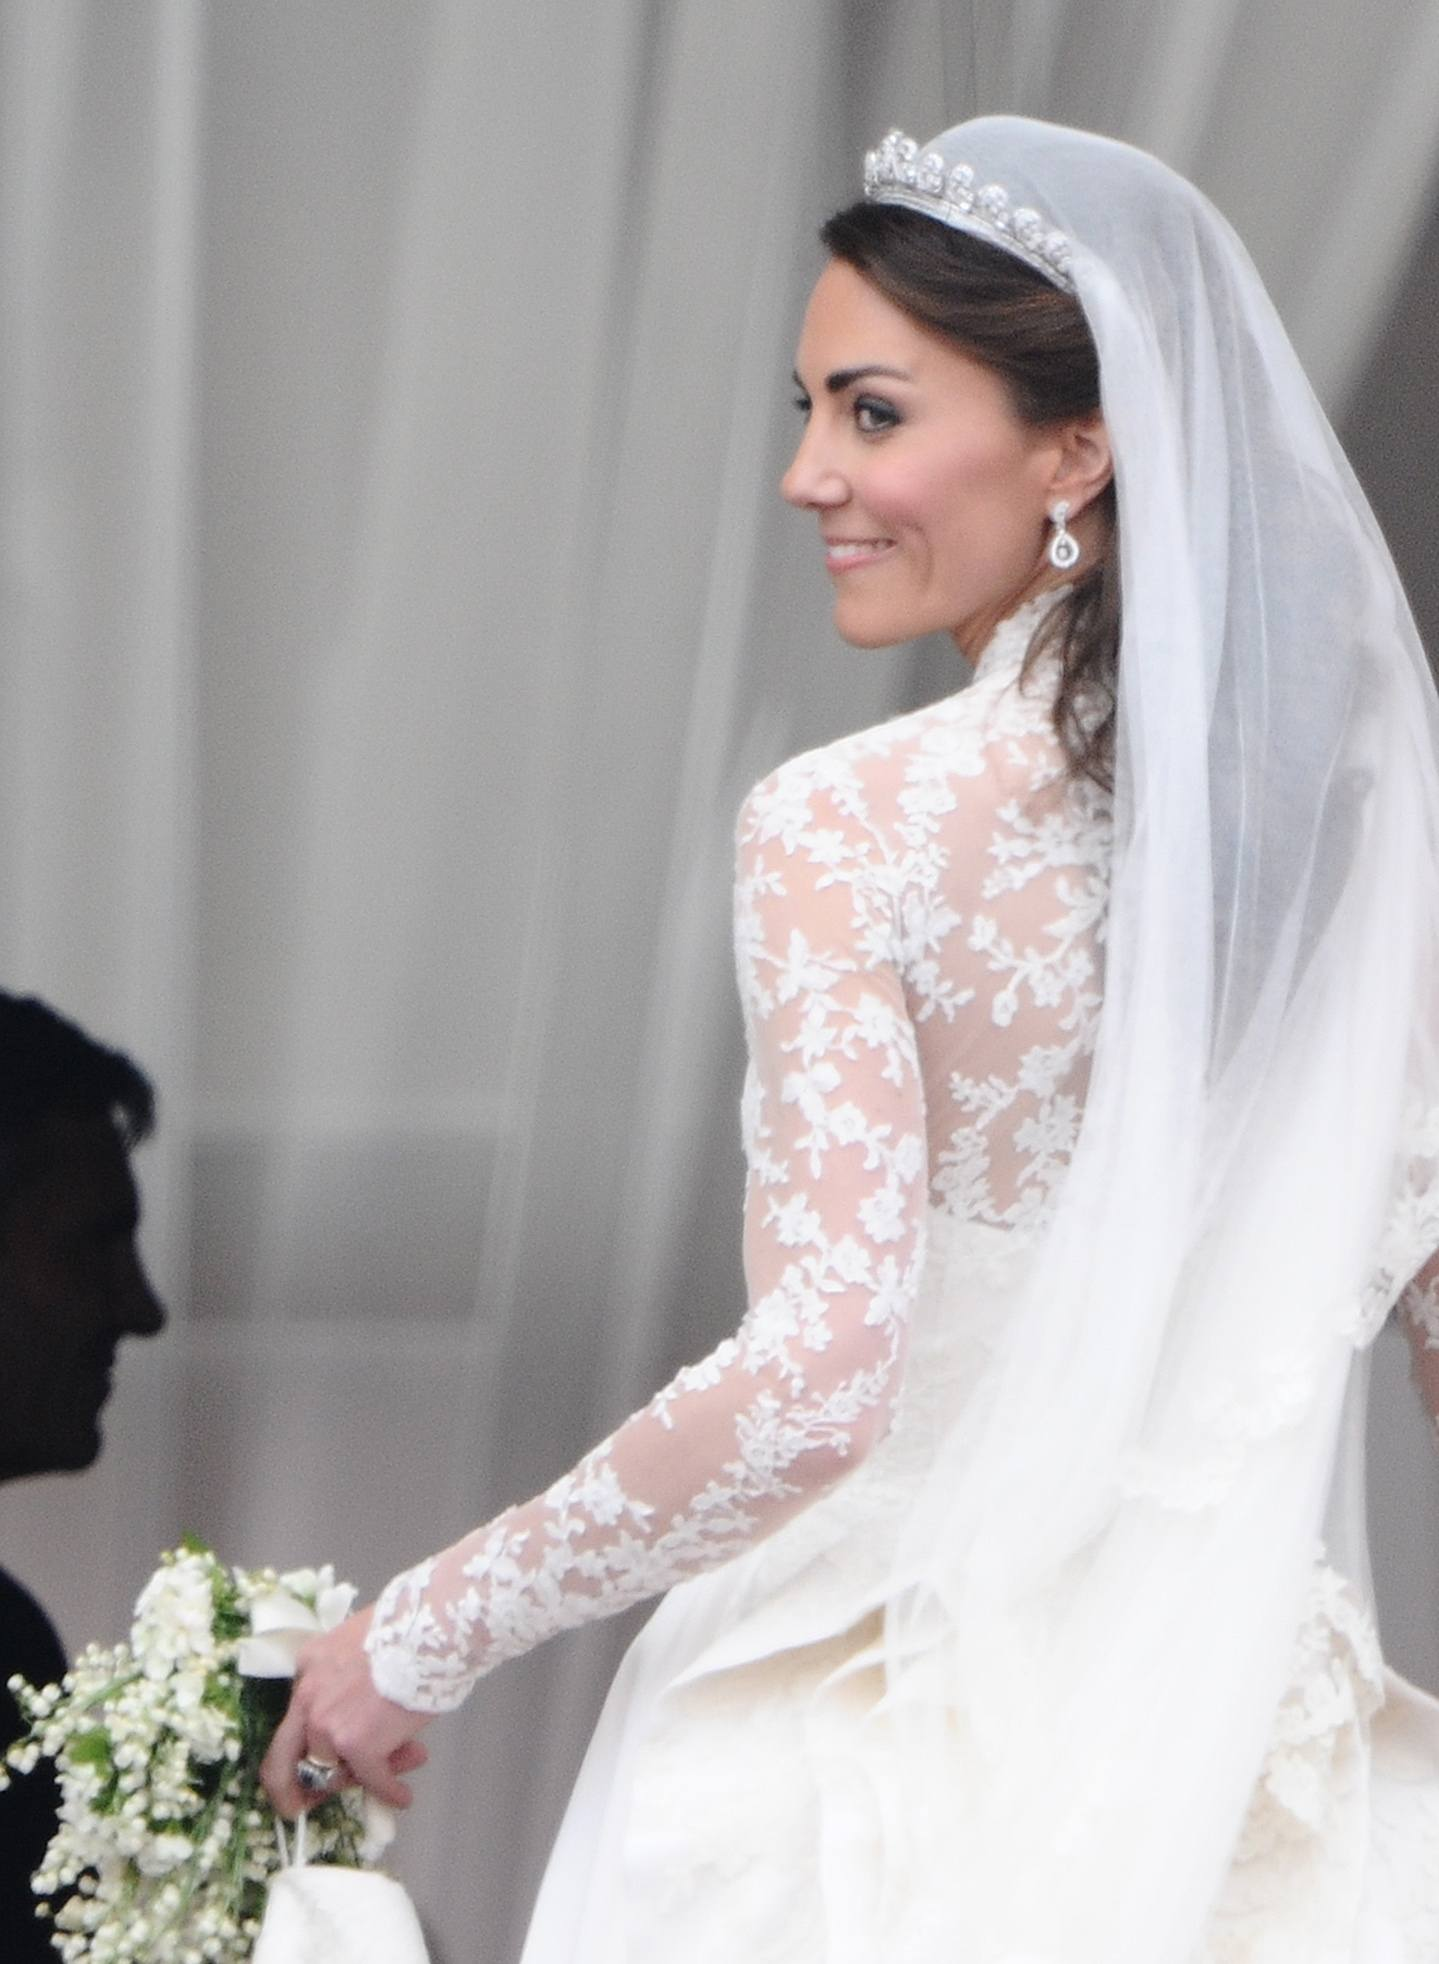 Kate Middletons Wedding Dresses.The Secret Message On Kate Middleton S Wedding Dress You